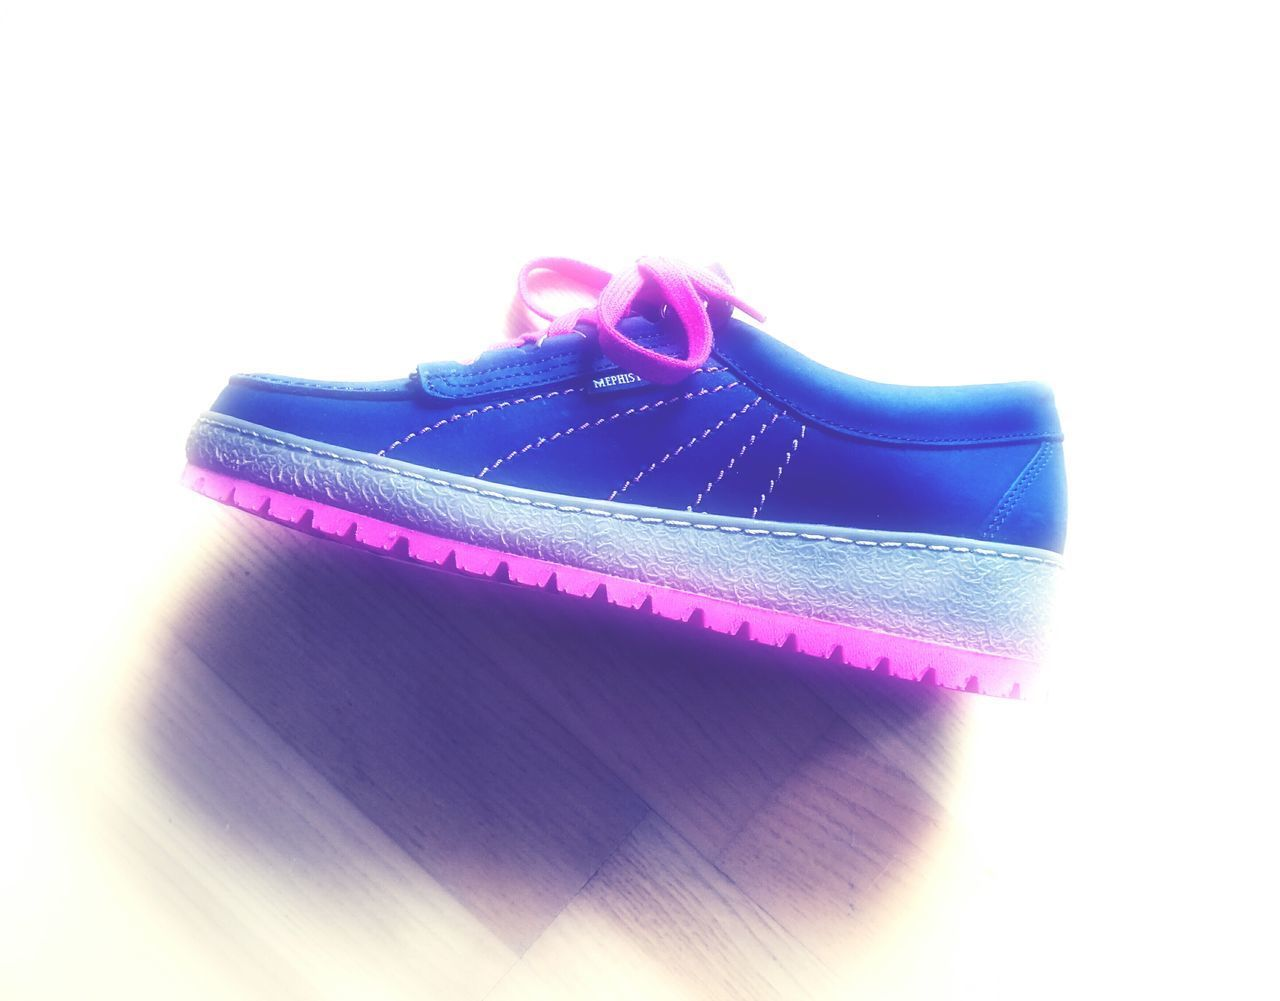 Purple Pink Color Beauty No People Close-up Indoors  Day Fashion Fashion Photography Shoes ♥ Shoes Shoes Of The Day Denmark 🇩🇰 EyeEm EyeEm Gallery Danmark Sko Skomode Eyeemphotography My Life